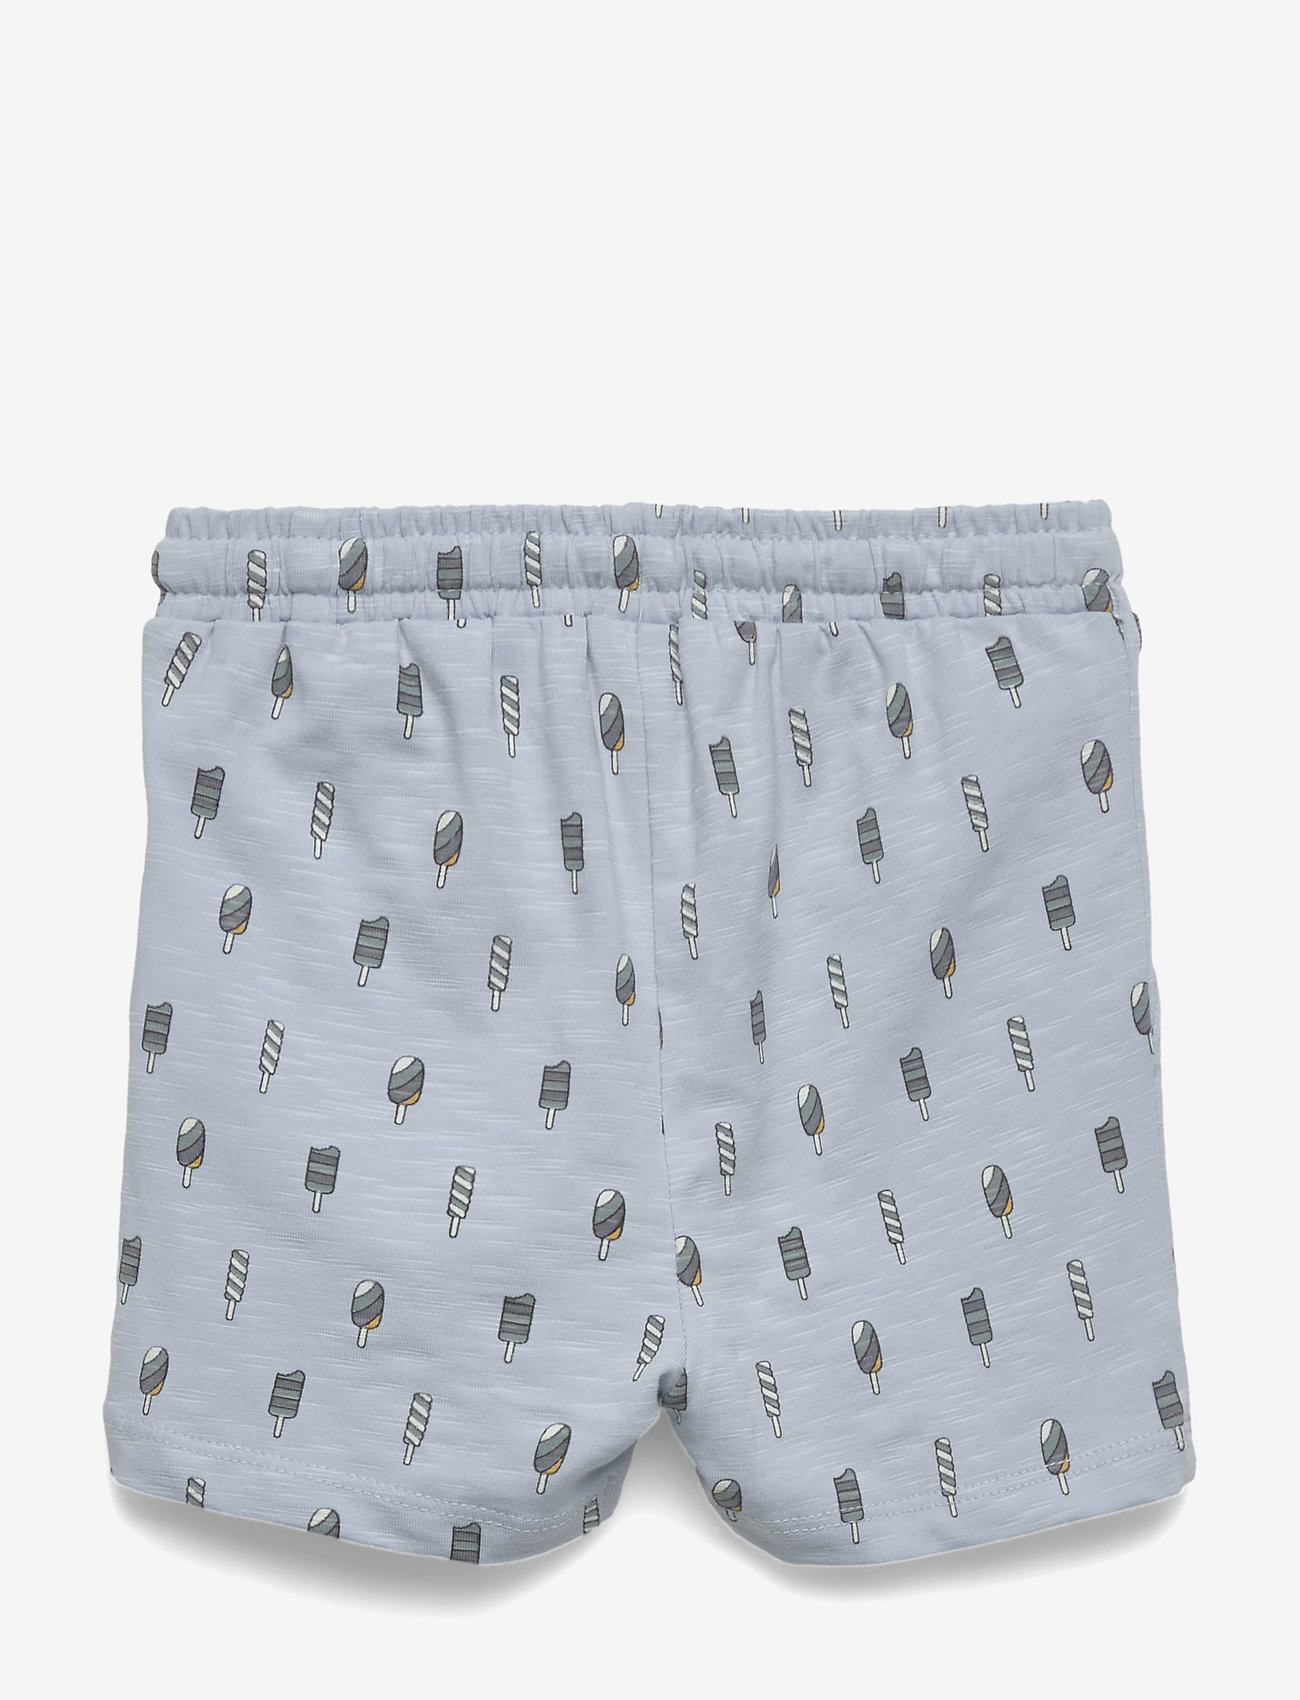 Petit by Sofie Schnoor - Shorts - shorts - light blue - 1